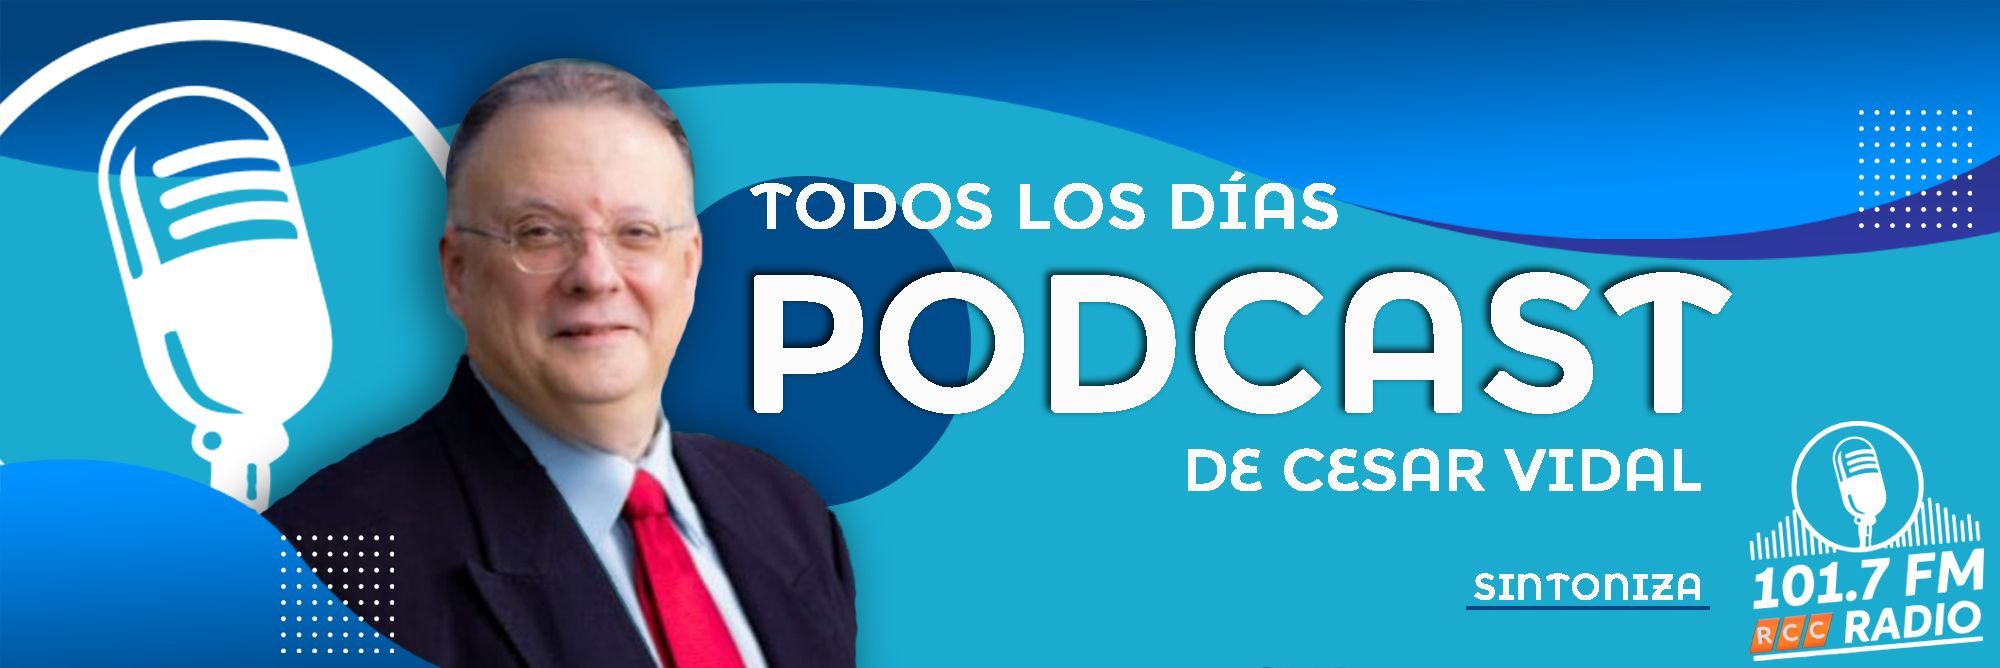 podcast cesar vidal